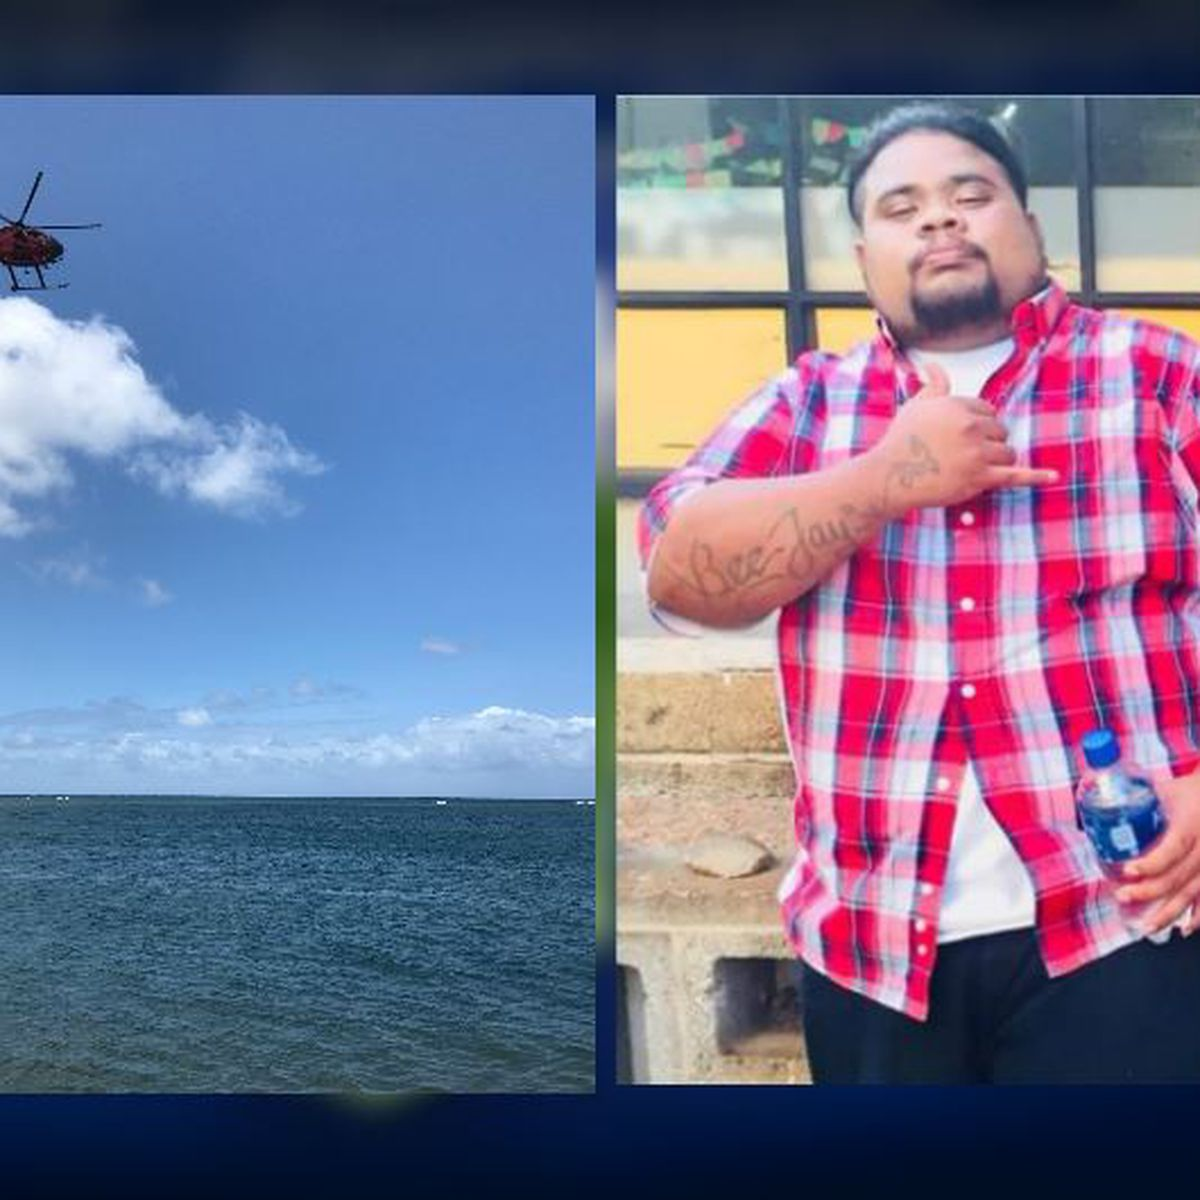 Agencies searching for man who went missing off Kauai while diving